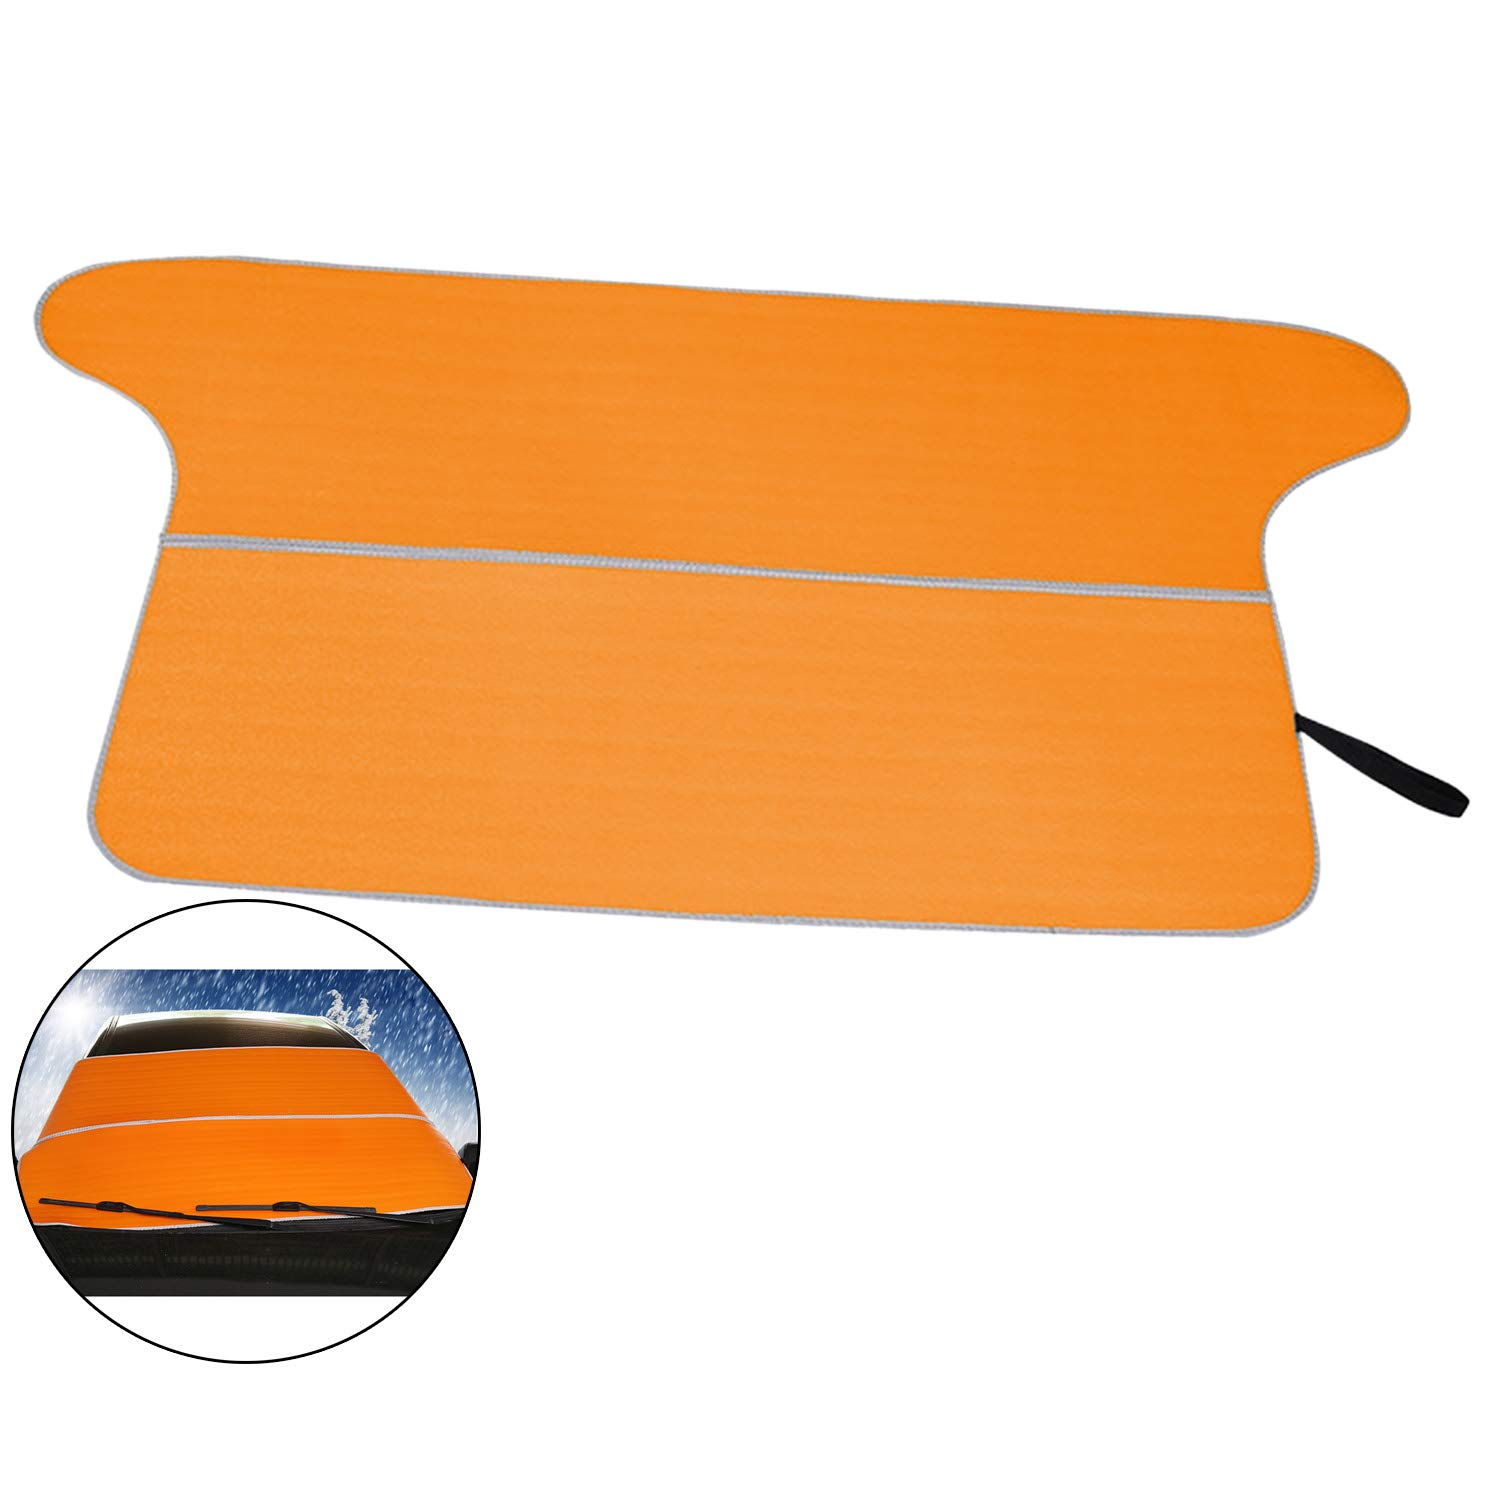 ZXK CO Car Windshield Snow Ice Cover, Sun Shade Protector with Cotton Thicker Snow Protection Cover Visa Shade for Cars Trucks Vans and SUVs Stop Scraping with a Brush or Shovel Yoga Mat Picnic Cloth by ZXK CO